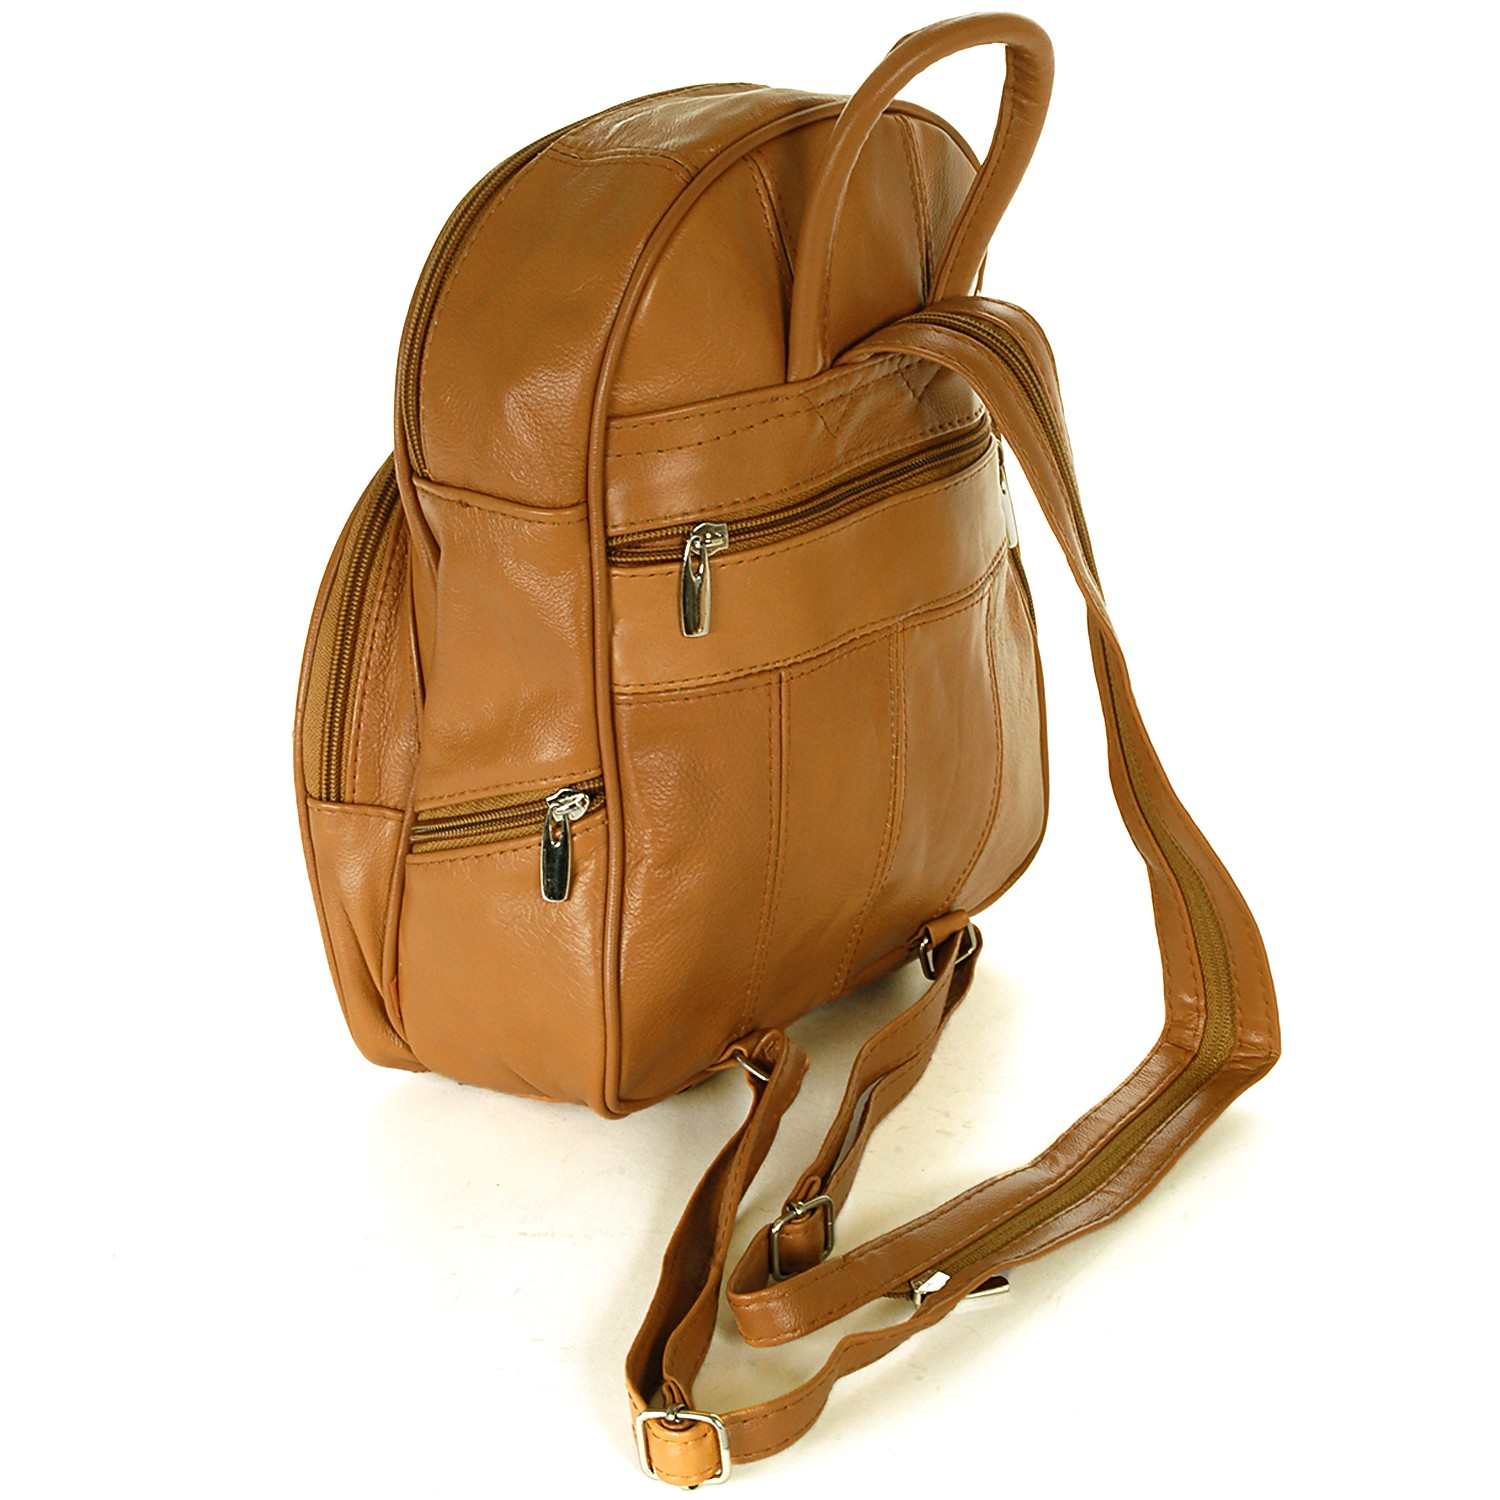 Details about New Leather Backpack Purse Sling Bag Back Pack Shoulder ...